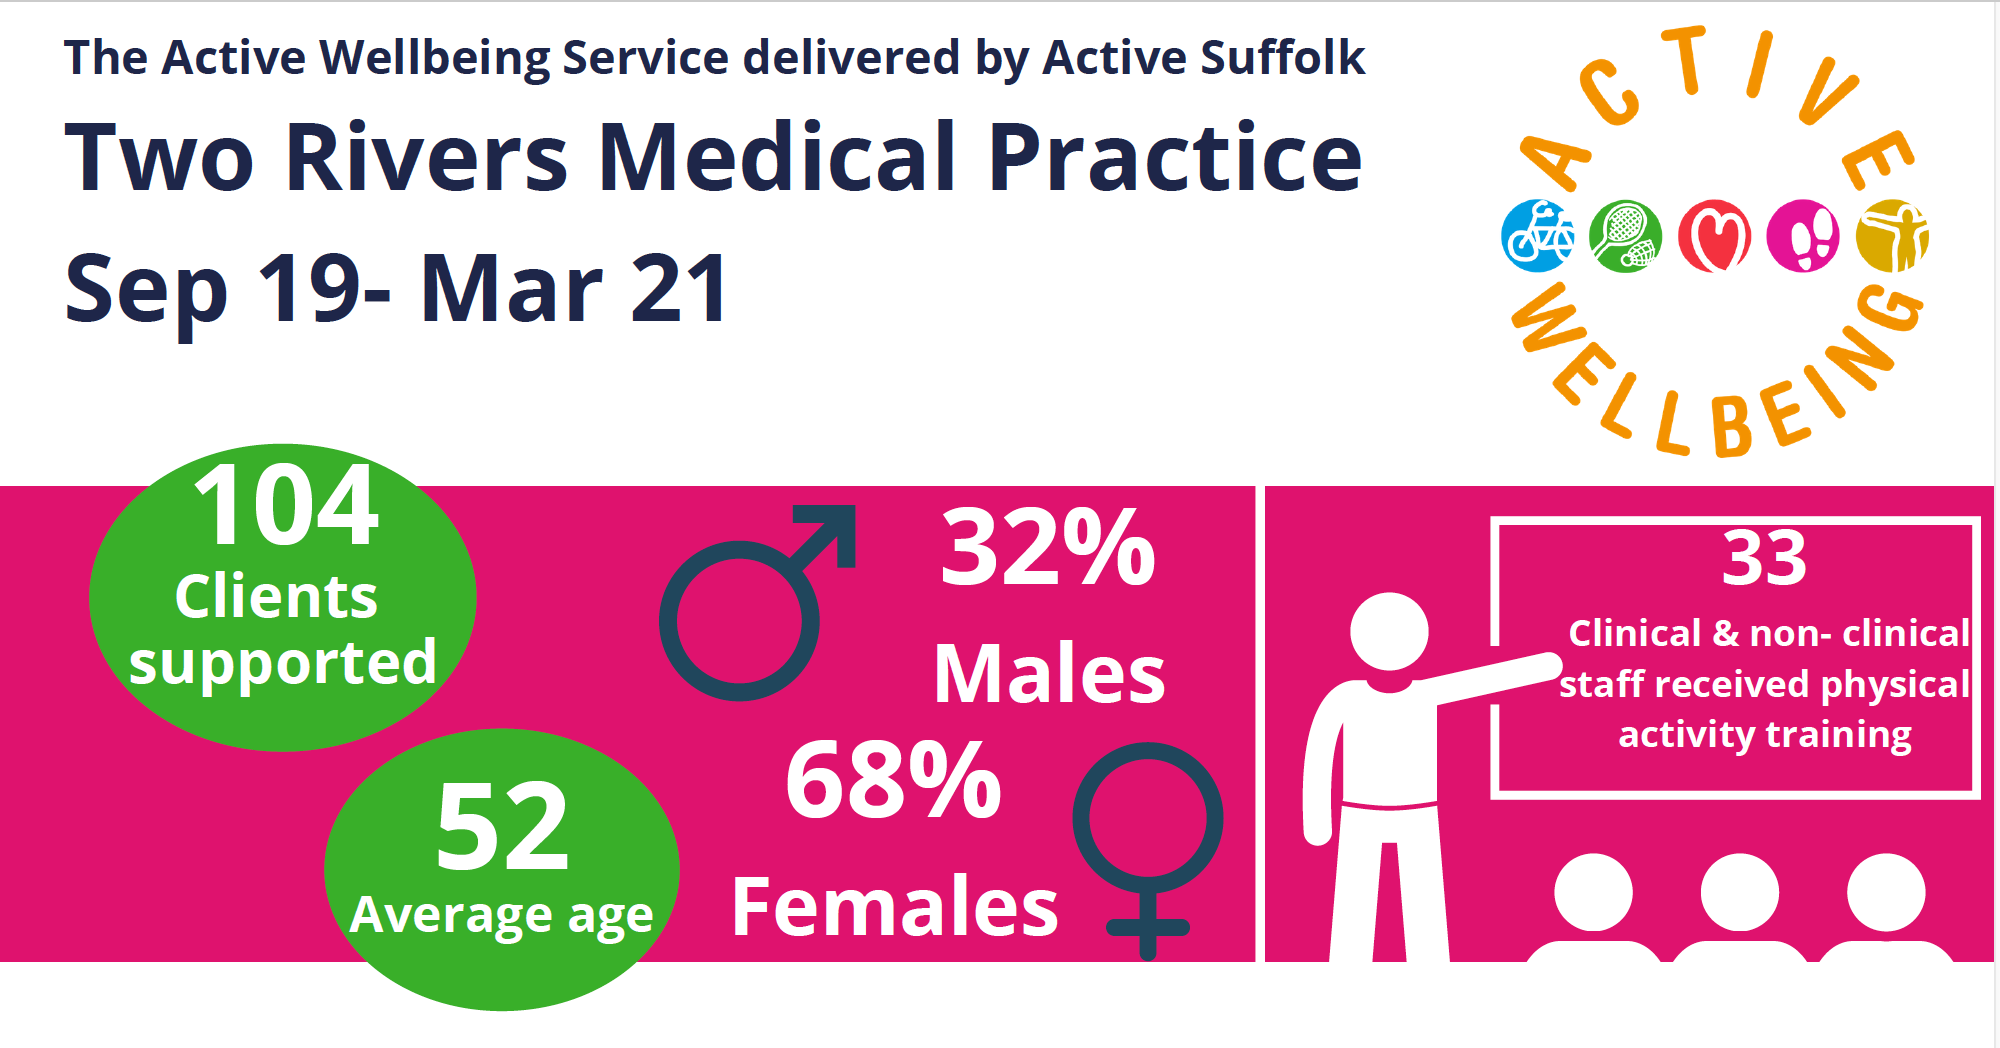 infographic stating Three Rivers Medal Practice involves 104 clients, 68% female, average age of 52